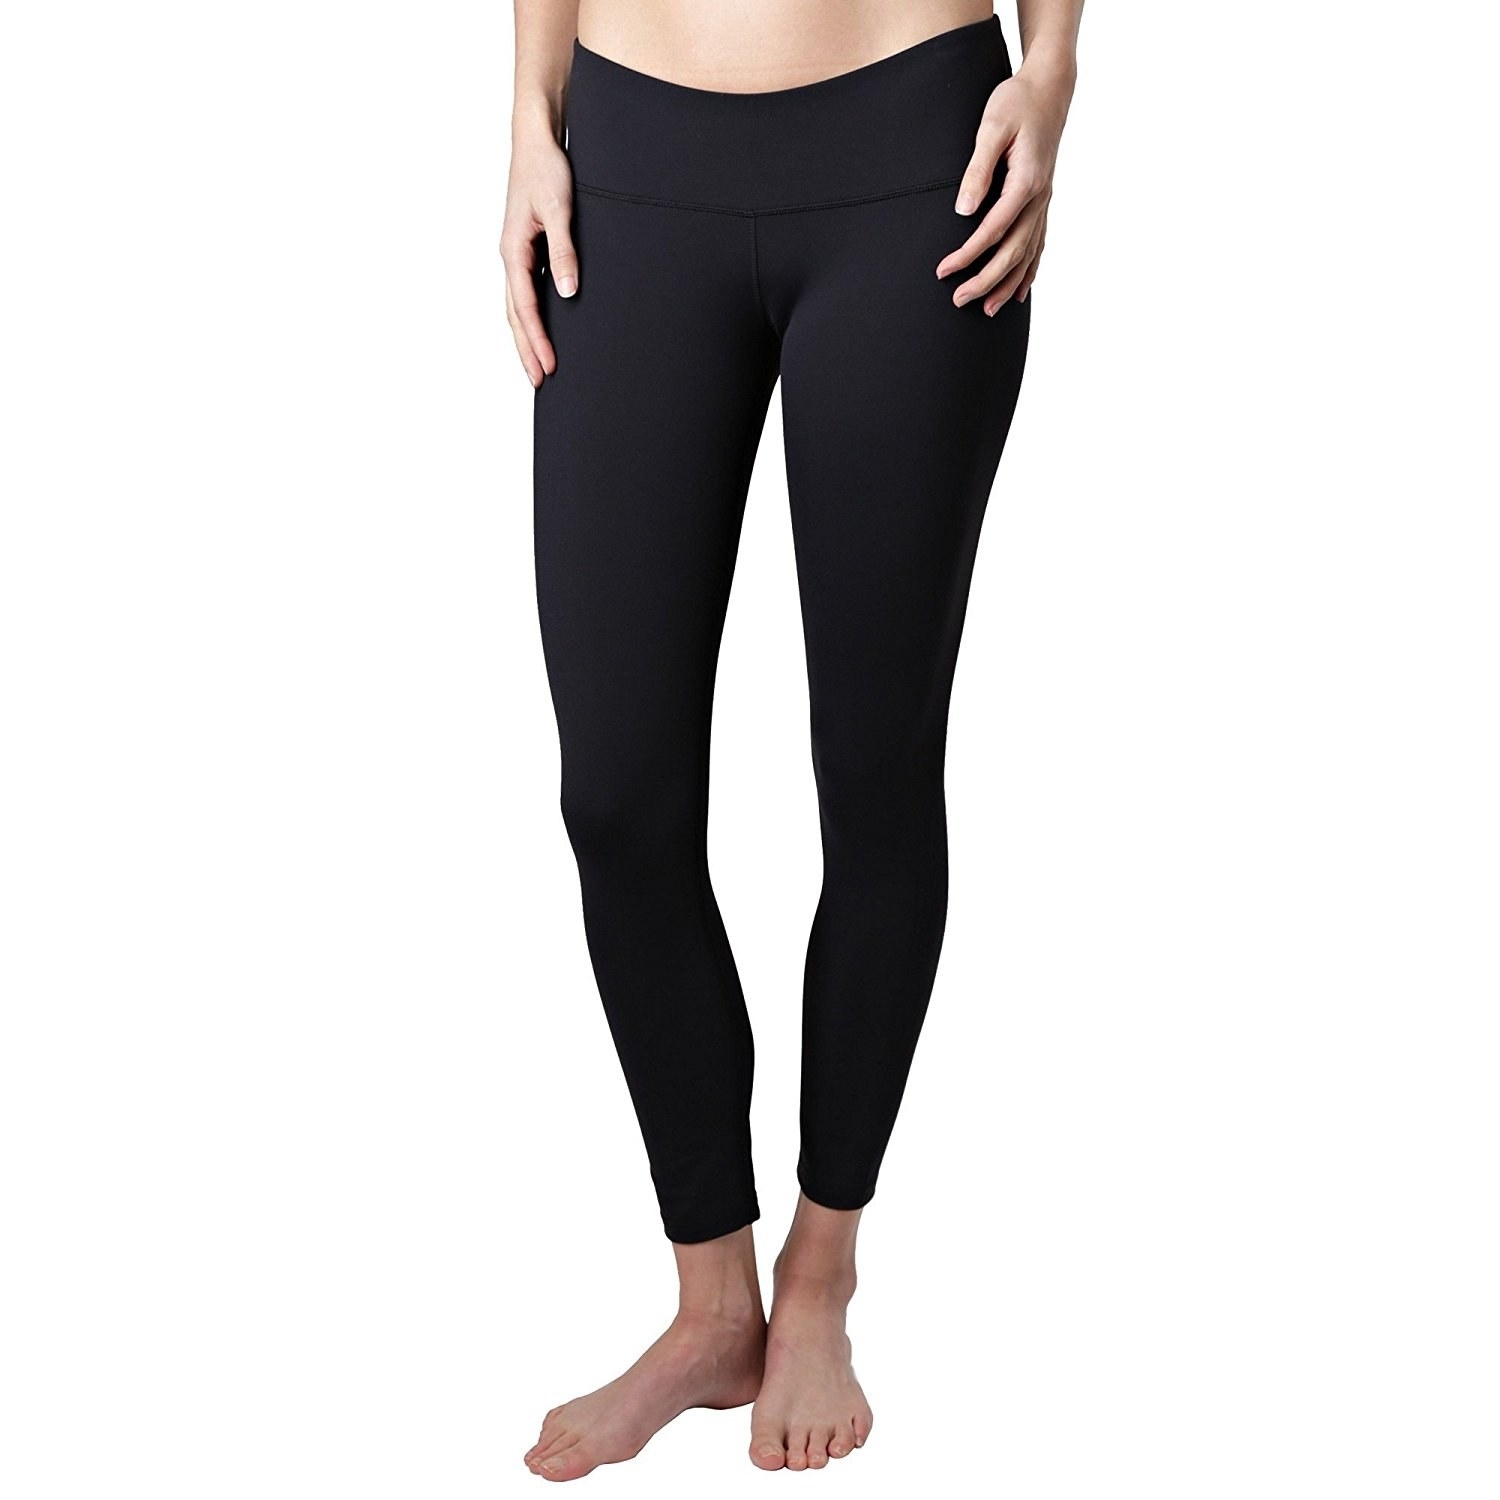 7300ba7d087b2 Tuff Athletics Yoga Leggings are mid-rise and have a massive amount of  stretch so you can be as comfy as possible while running errands for the  day.